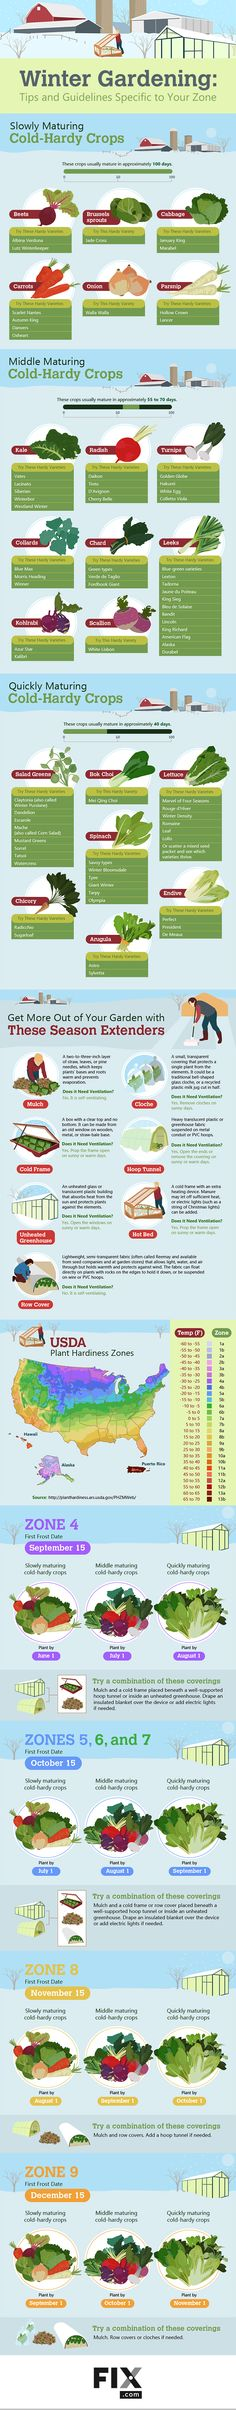 Indoor Vegetable Gardening Ultimate Guide To Have An Indoor Garden For Winter Indoor Vegetable Gardening, Organic Gardening Tips, Hydroponic Gardening, Hydroponics, Container Gardening, Garden Plants, Veg Garden, Gardening Vegetables, Greenhouse Gardening